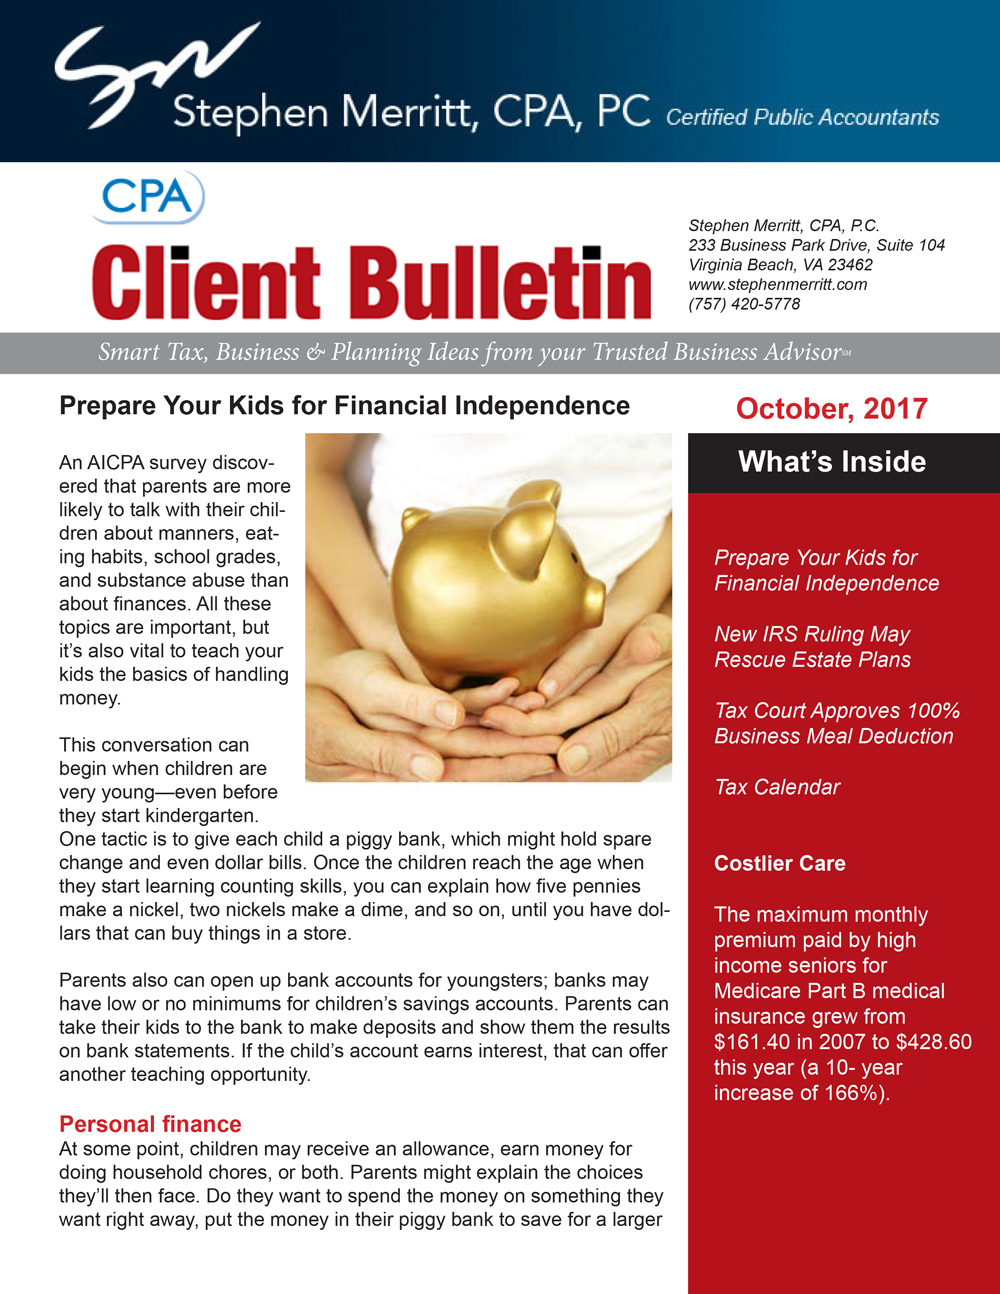 october accounting news from stephen merritt in virginia beach